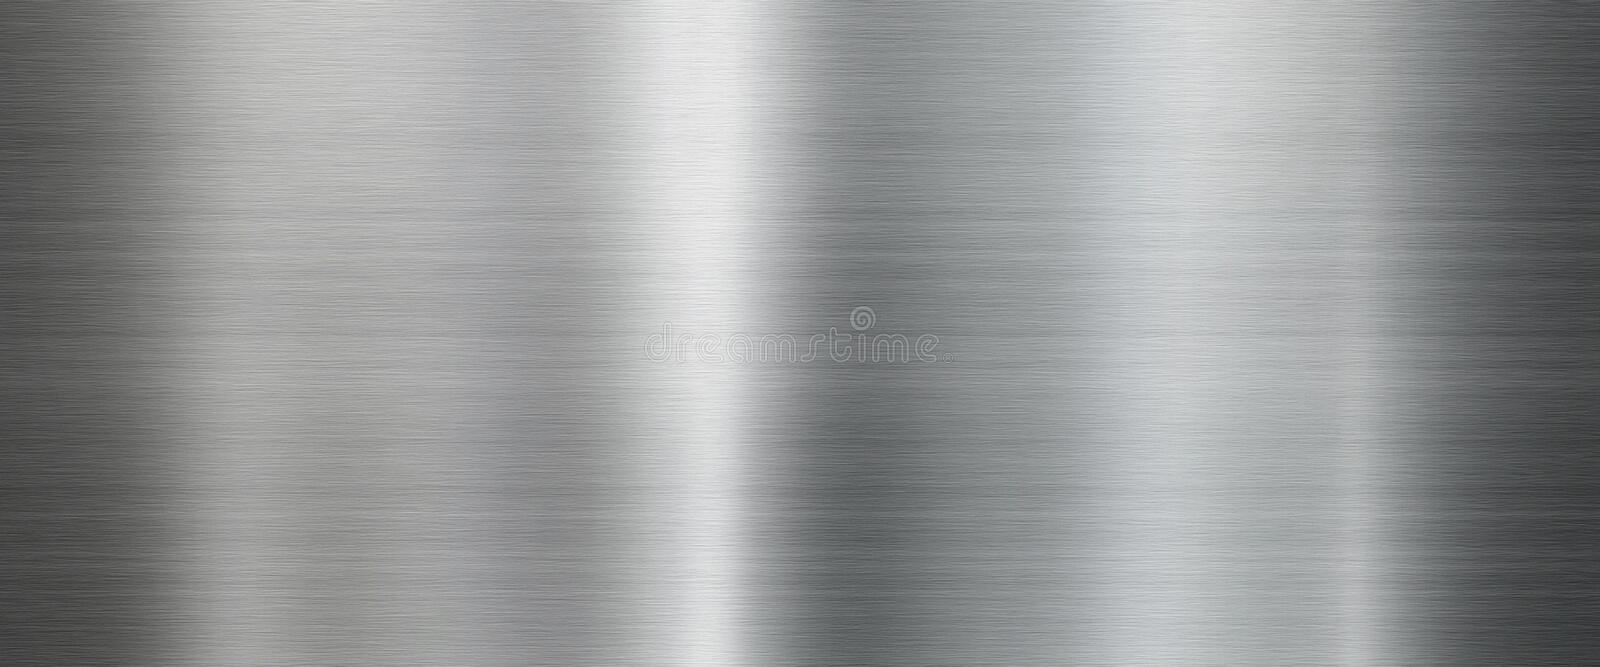 Metal texture background in silver stock images